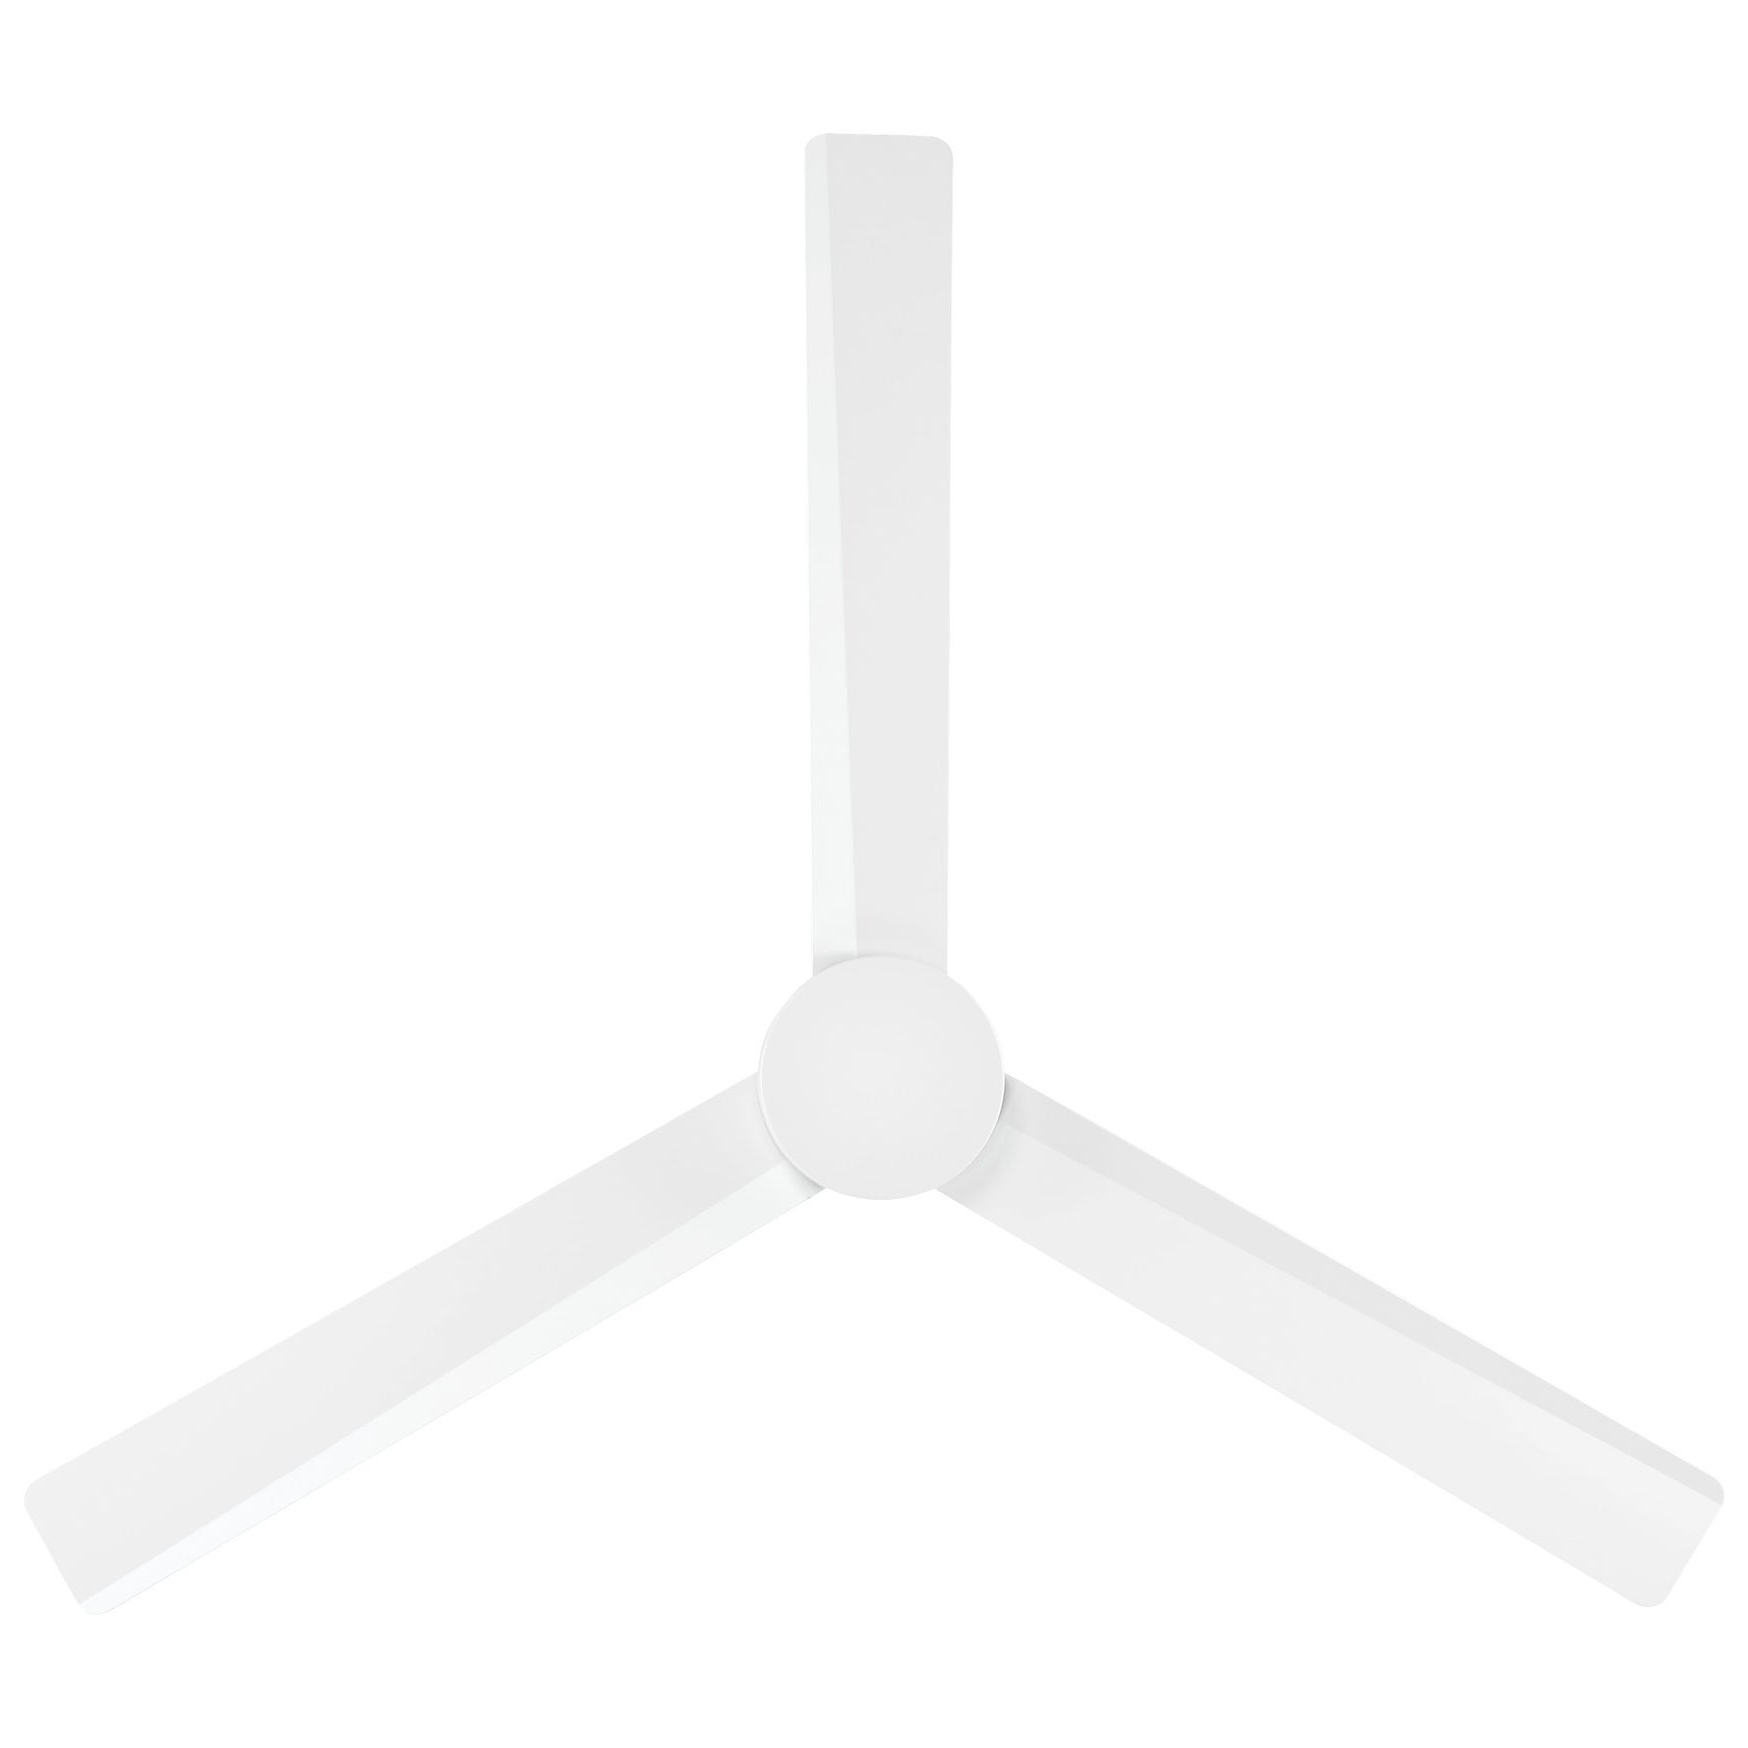 """Minkaaire Roto Xl 62"""" 3 Blade Outdoor Ceiling Fan With Wall Control System – Within Well Liked Roto 3 Blade Ceiling Fans (View 7 of 20)"""